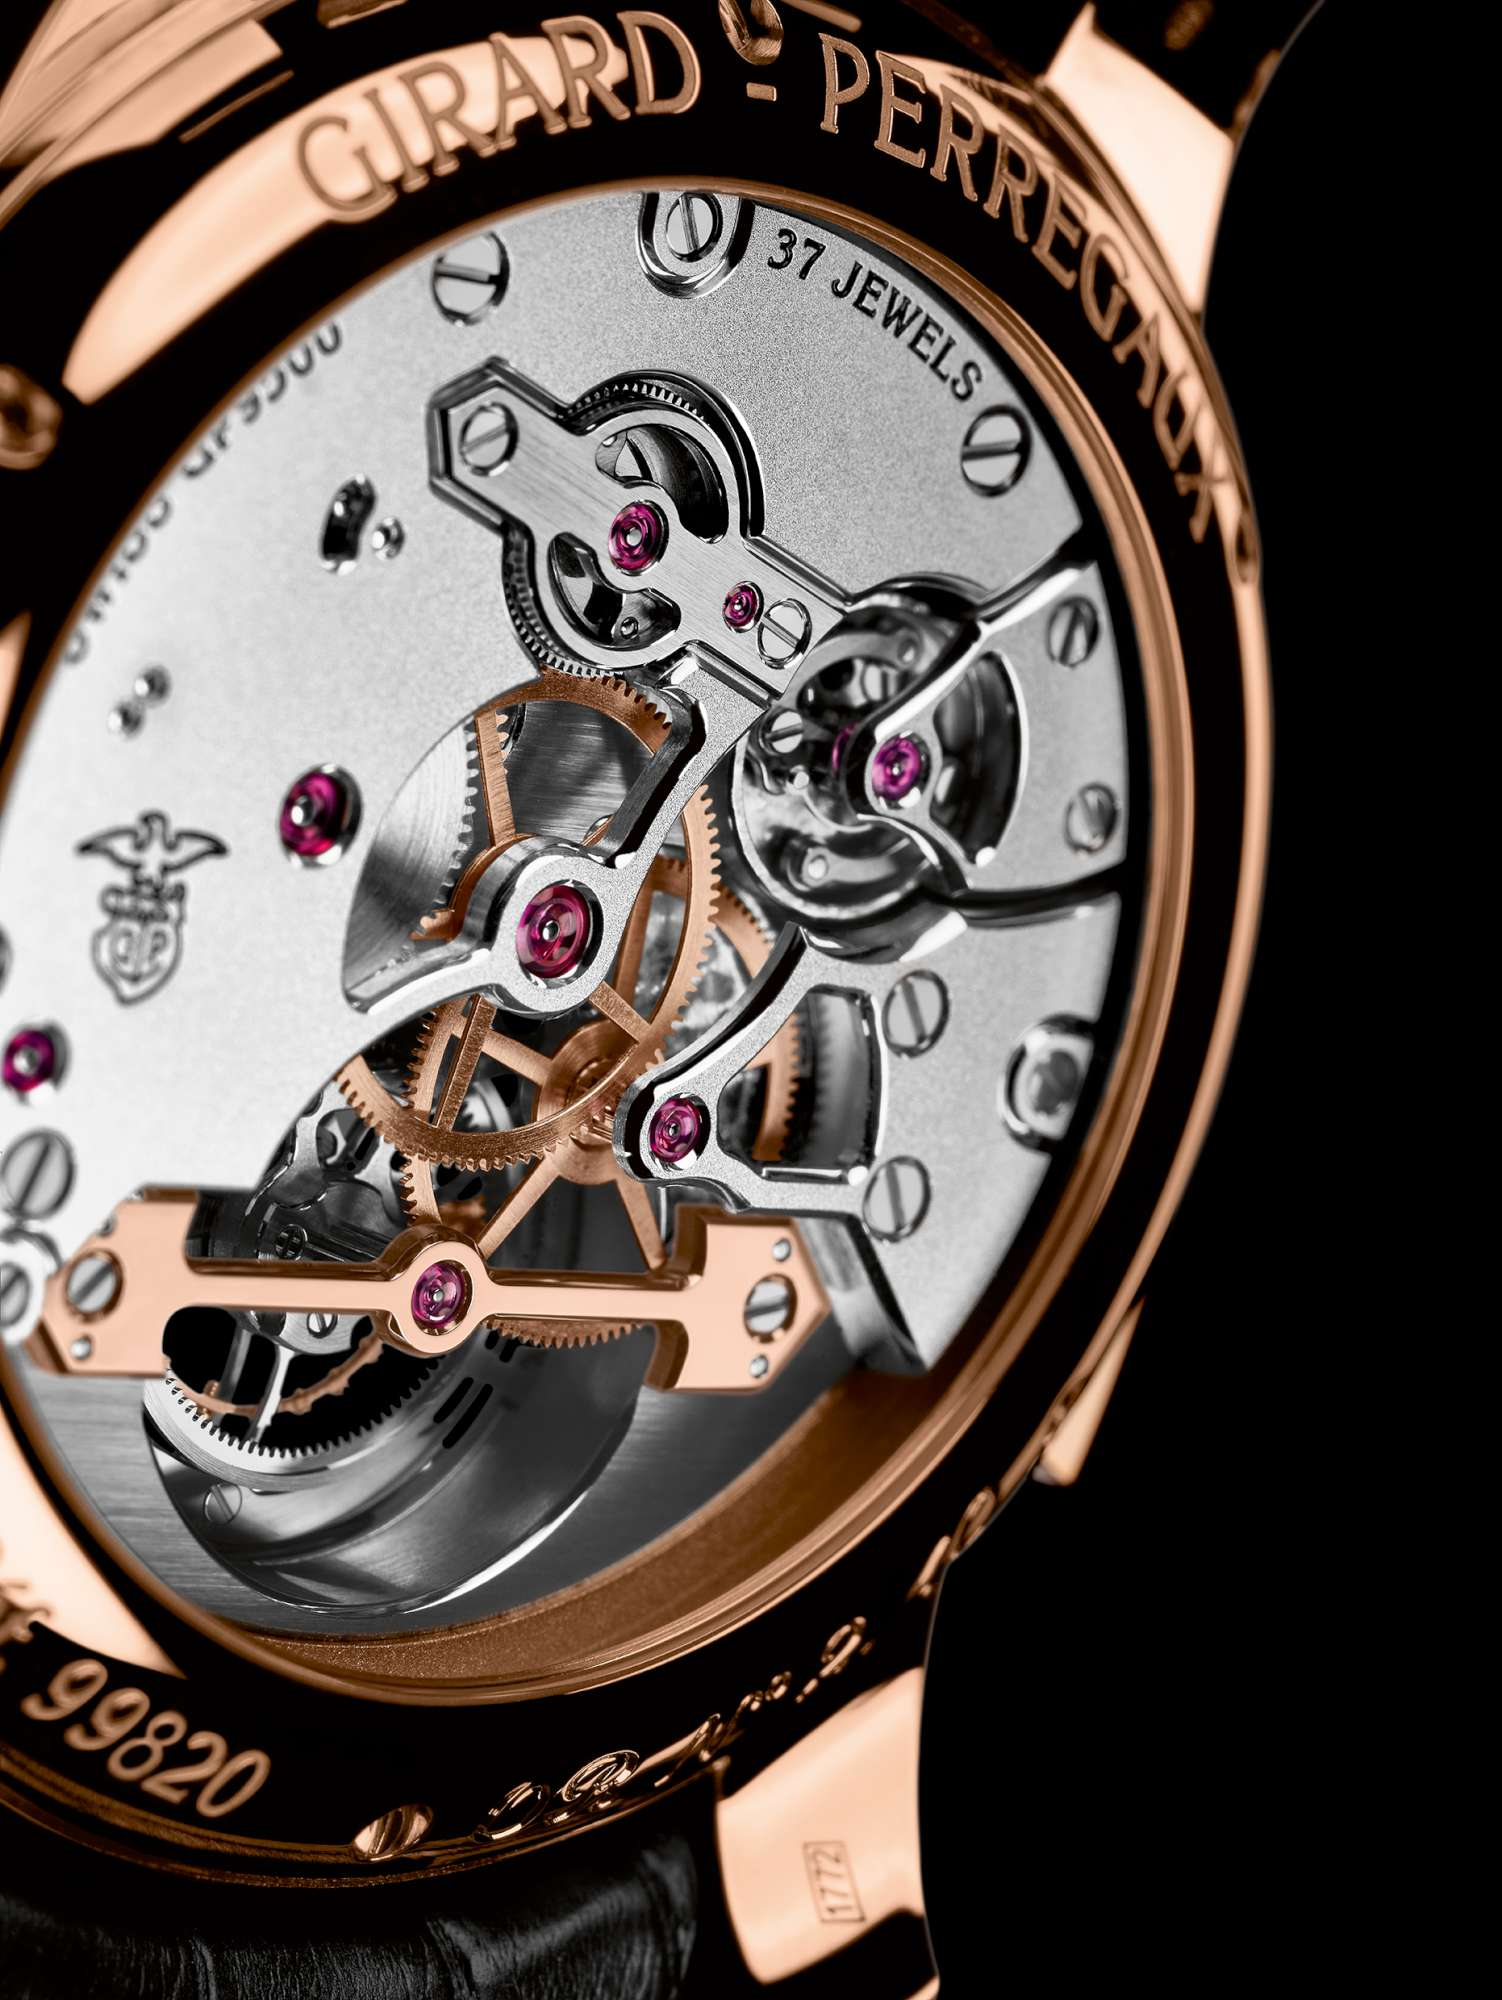 GP_LD_Tourbillon Minute Repeater with Gold Bridges_CLUP-2000